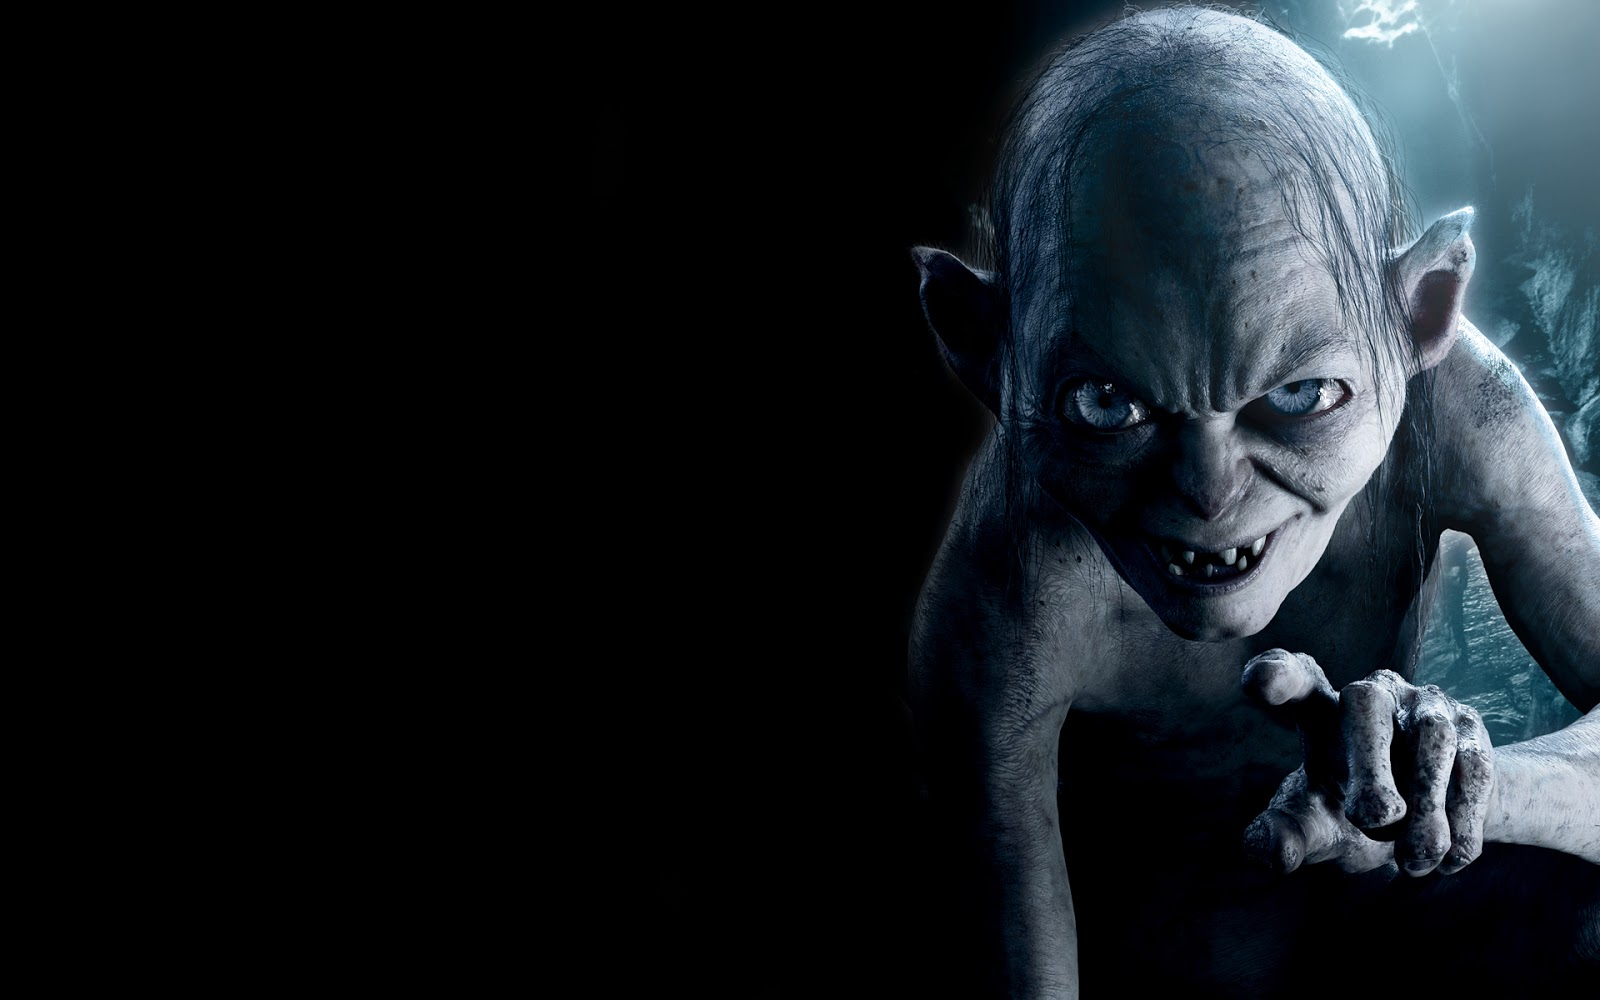 Gollum Hobbit An Unexpected Journey Movie HD Wallpaper Download HD 1600x1000